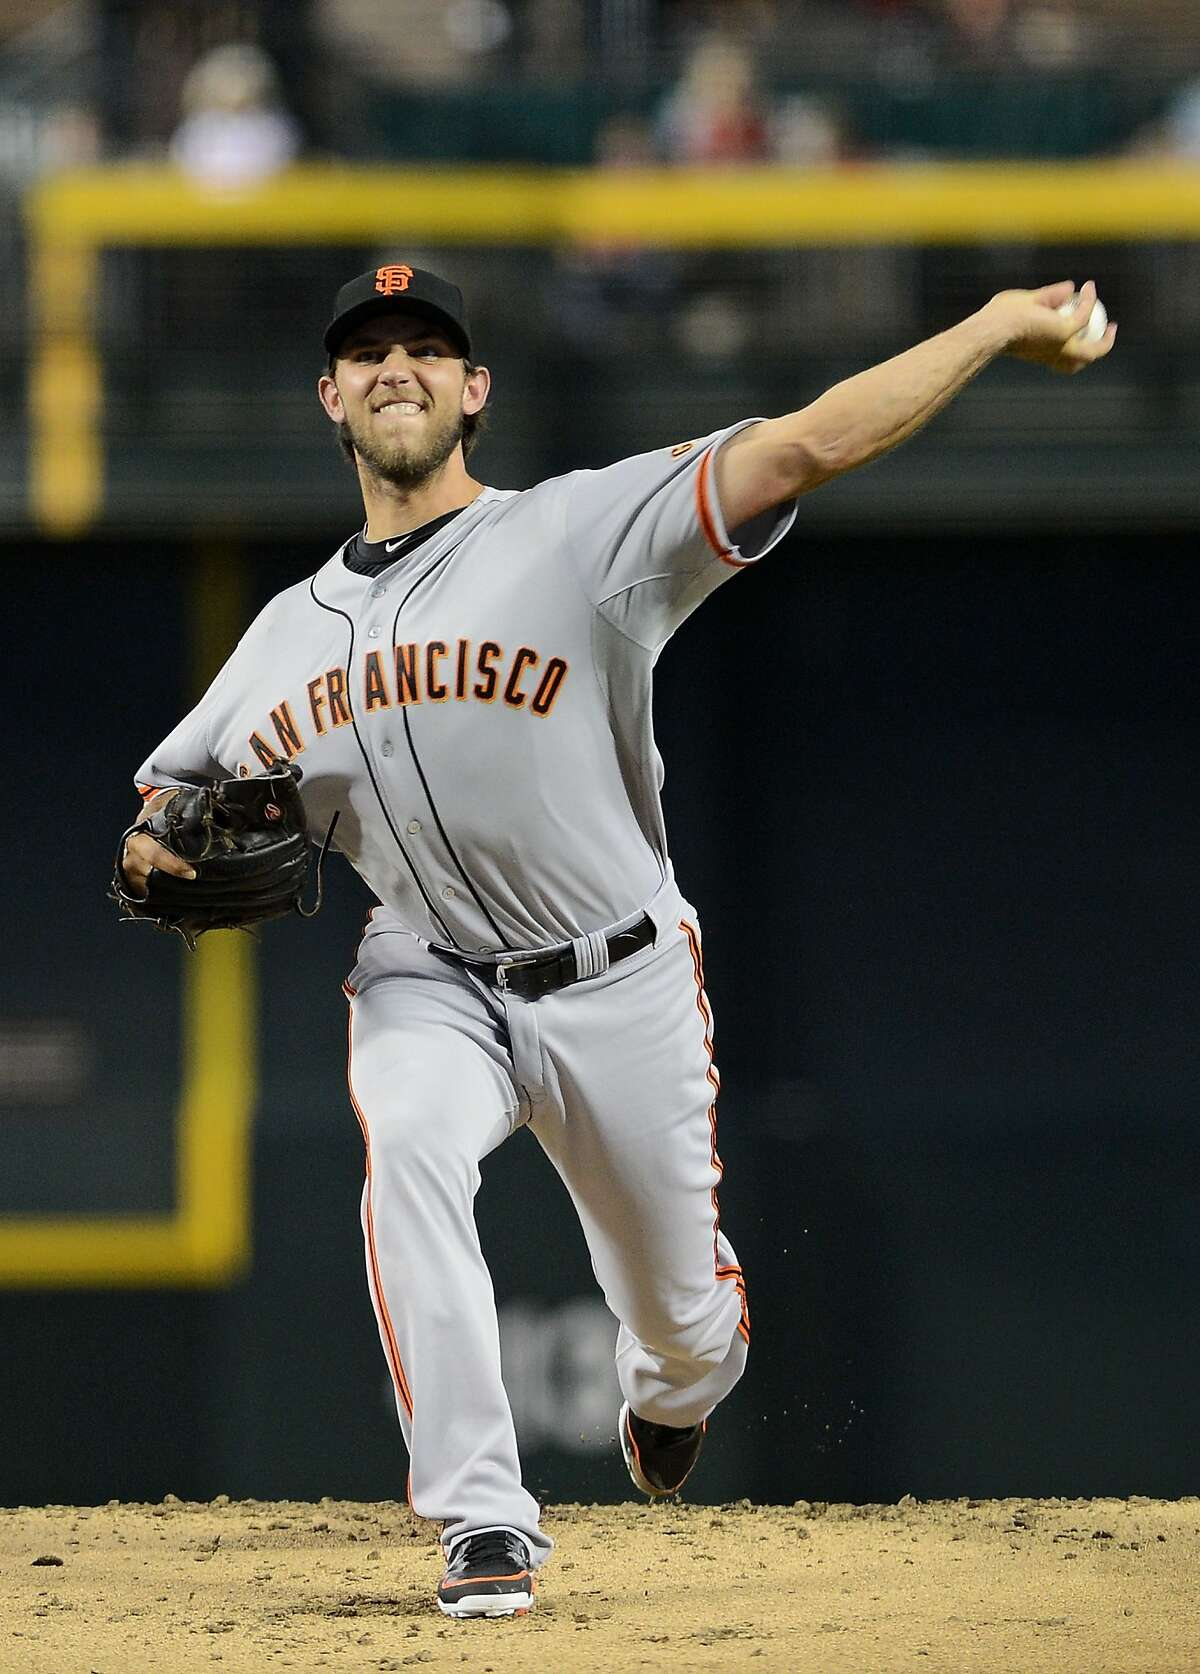 PHOENIX, AZ - JUNE 08: Starting pitcher Madison Bumgarner #40 of the San Francisco Giants pitches against the Arizona Diamondbacks in the first inning at Chase Field on June 8, 2013 in Phoenix, Arizona. (Photo by Jennifer Stewart/Getty Images)